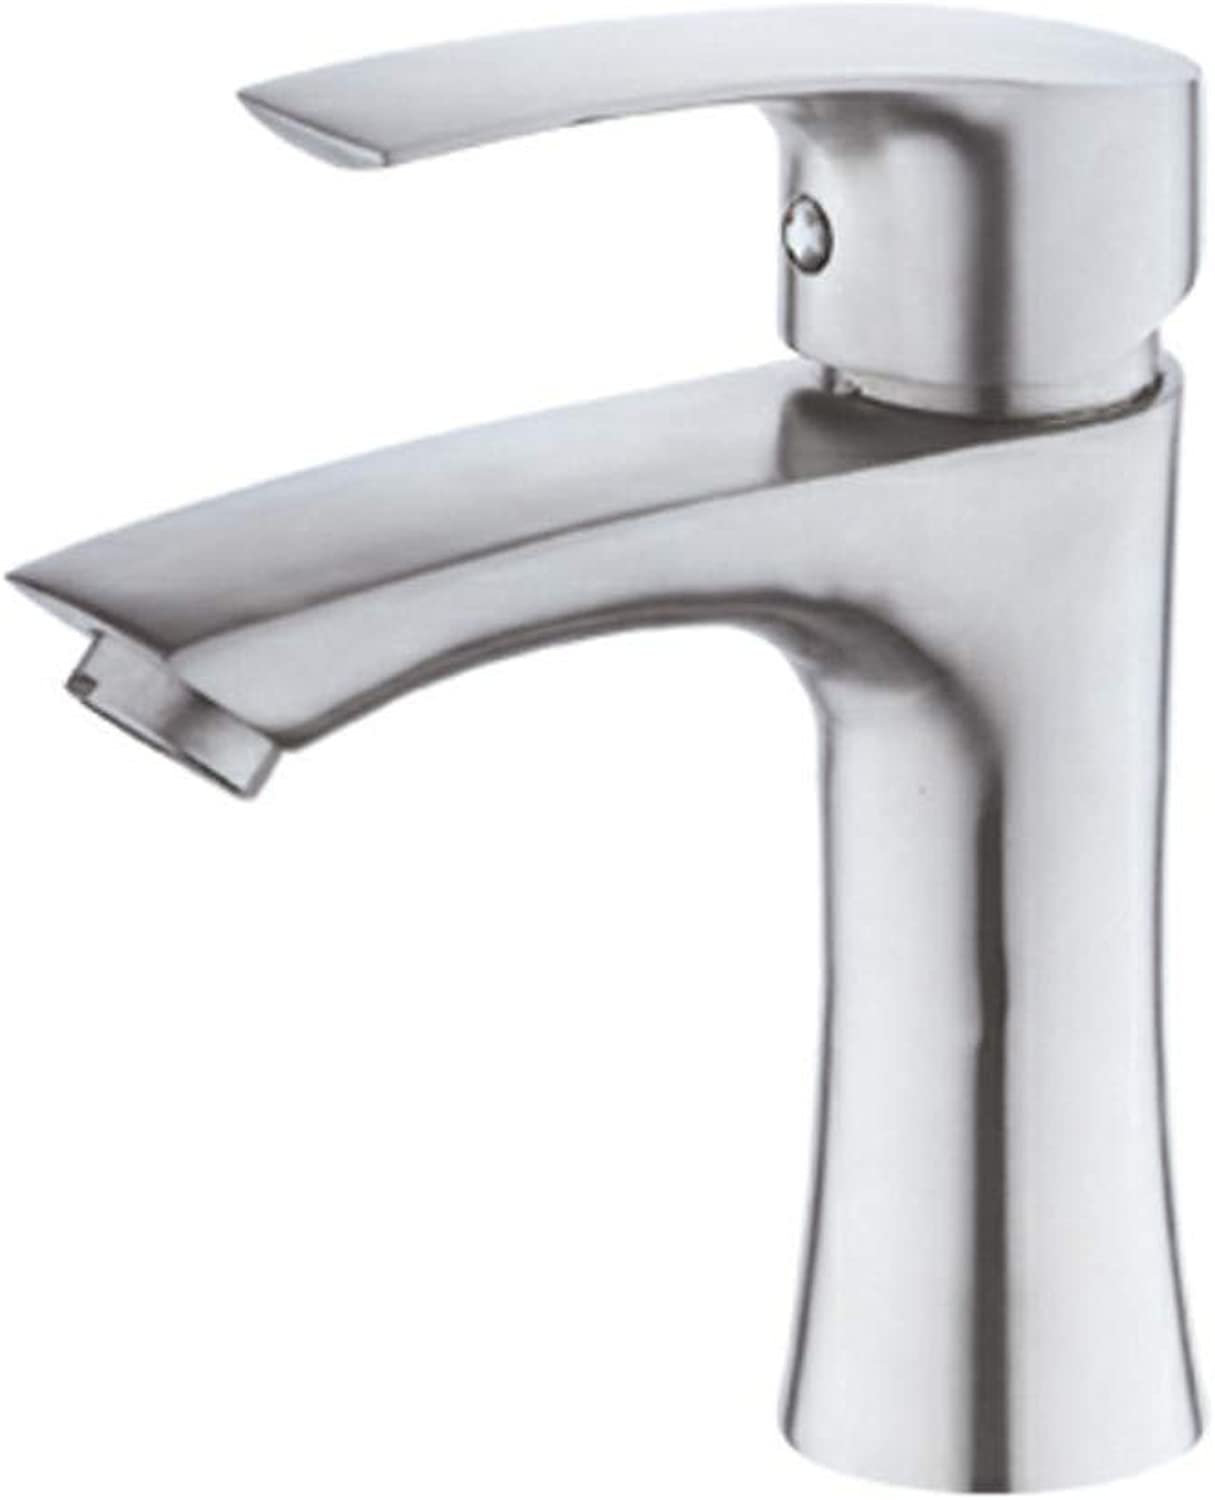 Kitchen Sink Tapbathroom Sink Tap 304 Stainless Steel High-Heeled Single Hole Hot And Cold Wash Basin Faucet Washbasin Sitting Above Counter Basin Faucet